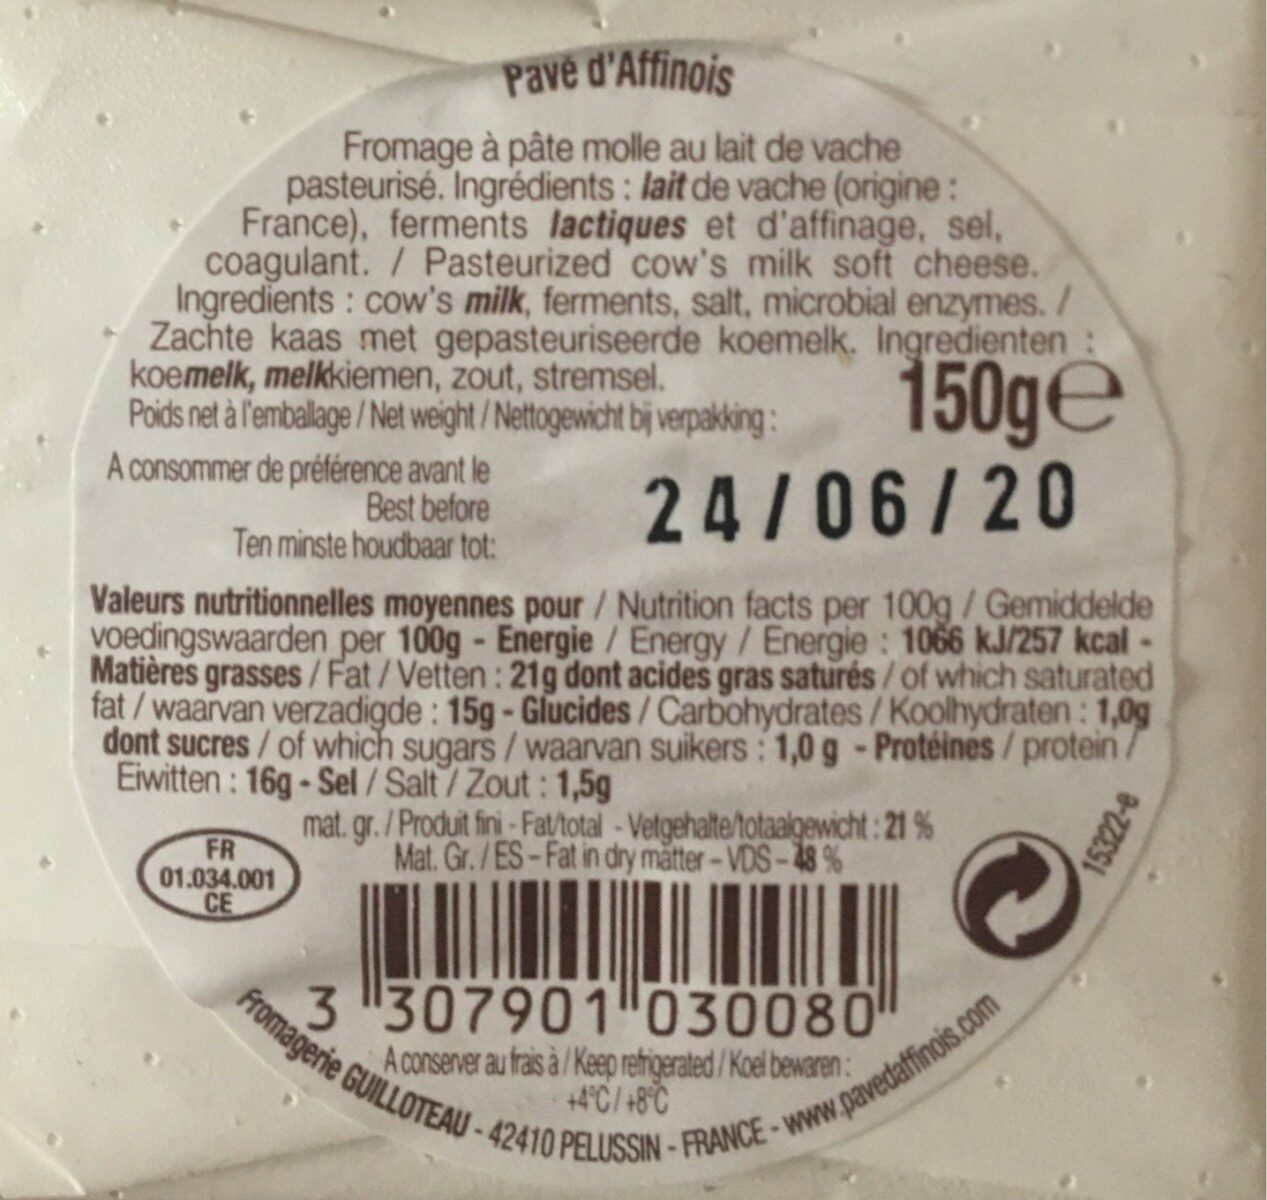 150G Pave D Affinois Preemballe - Informations nutritionnelles - fr